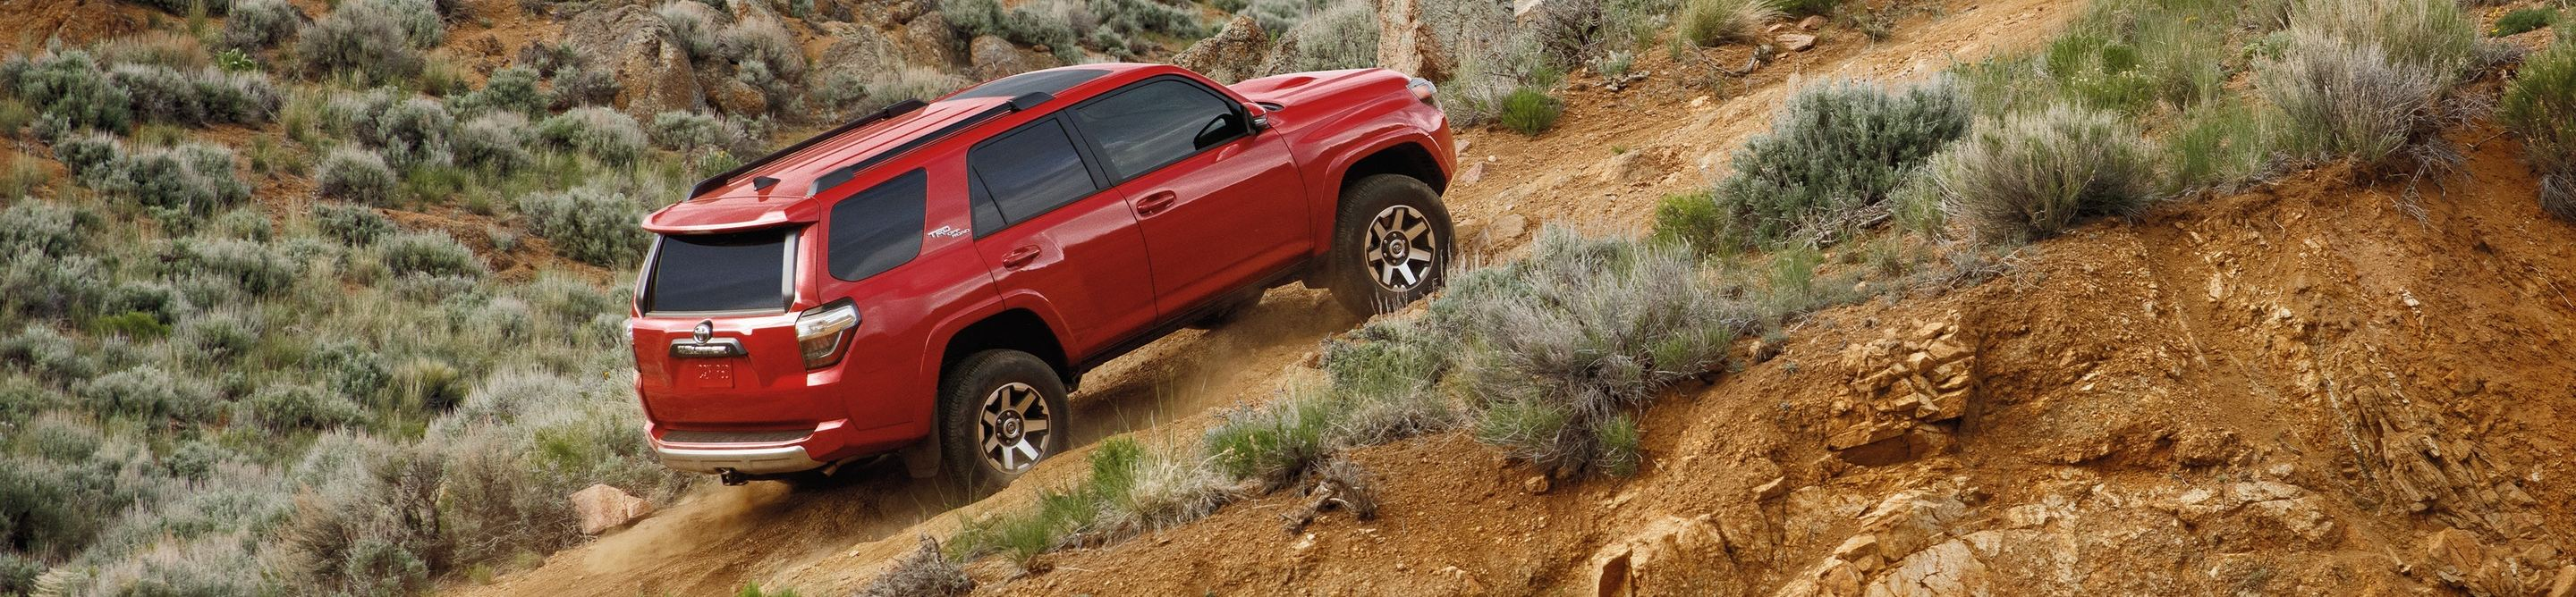 2020 Toyota 4Runner Leasing near Milpitas, CA